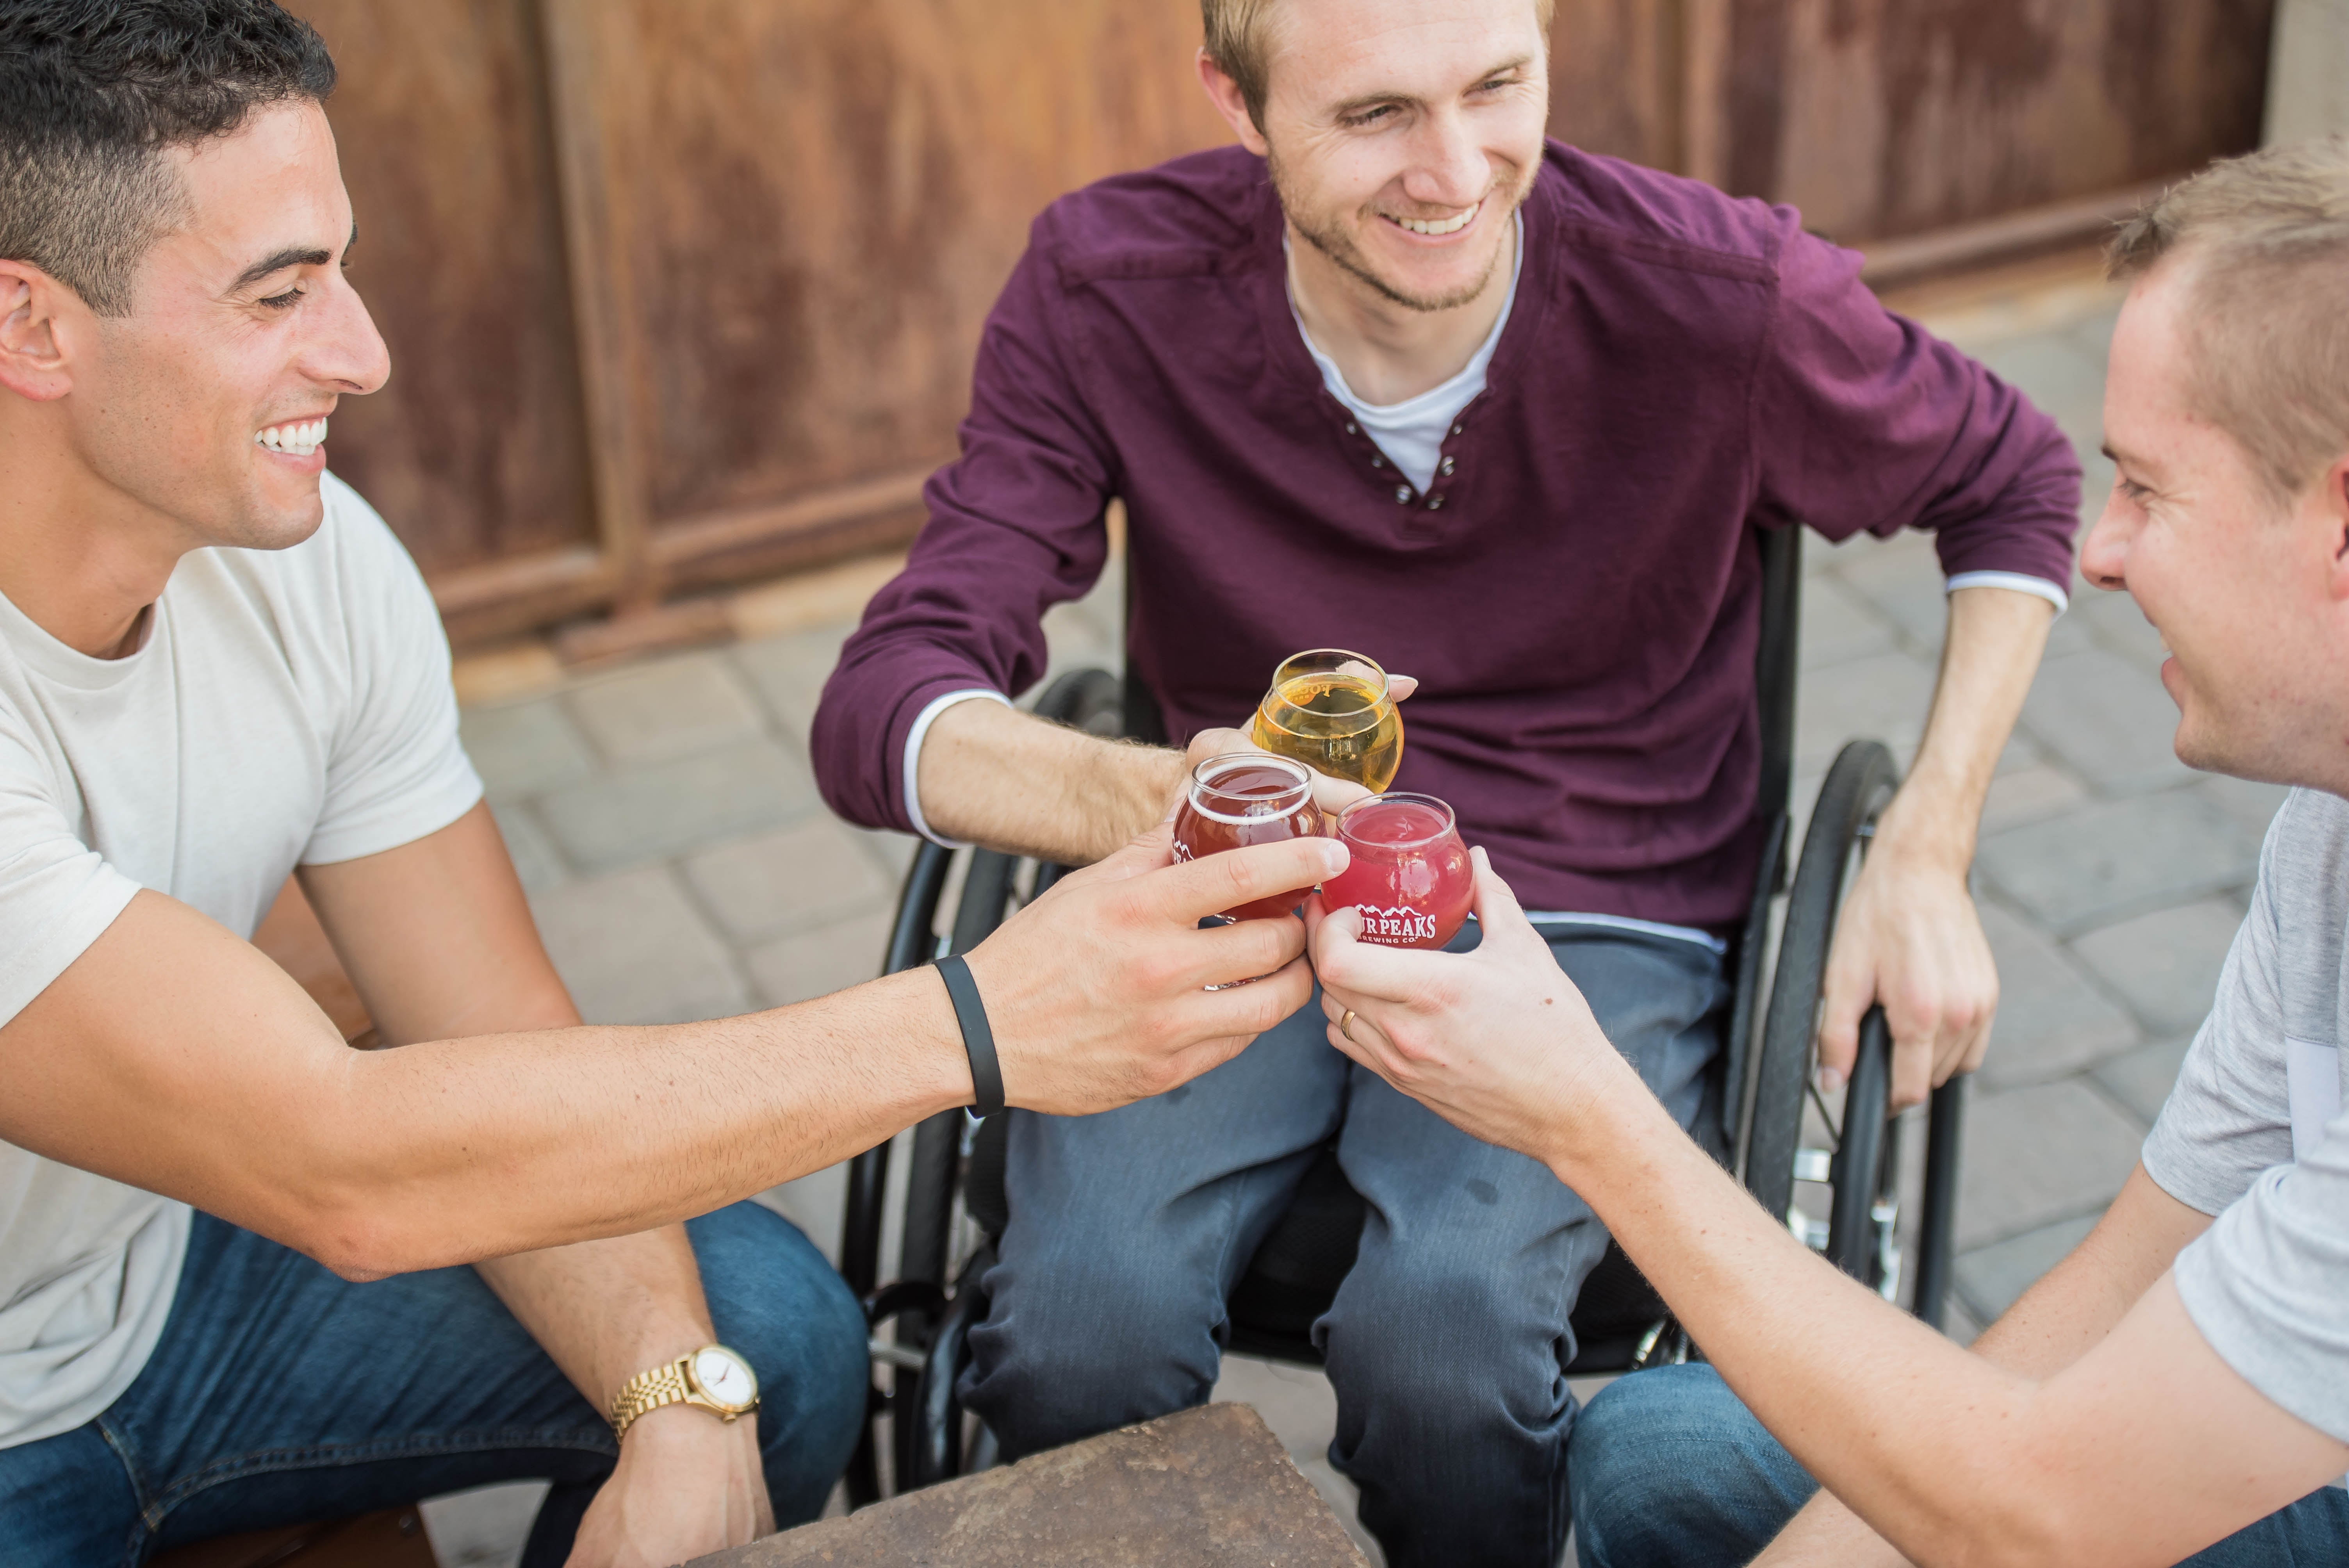 A group of three men chink glasses outside at a pub. The man in the middle, wearing a dark purple t-shirt and jeans, is a wheelchair user.